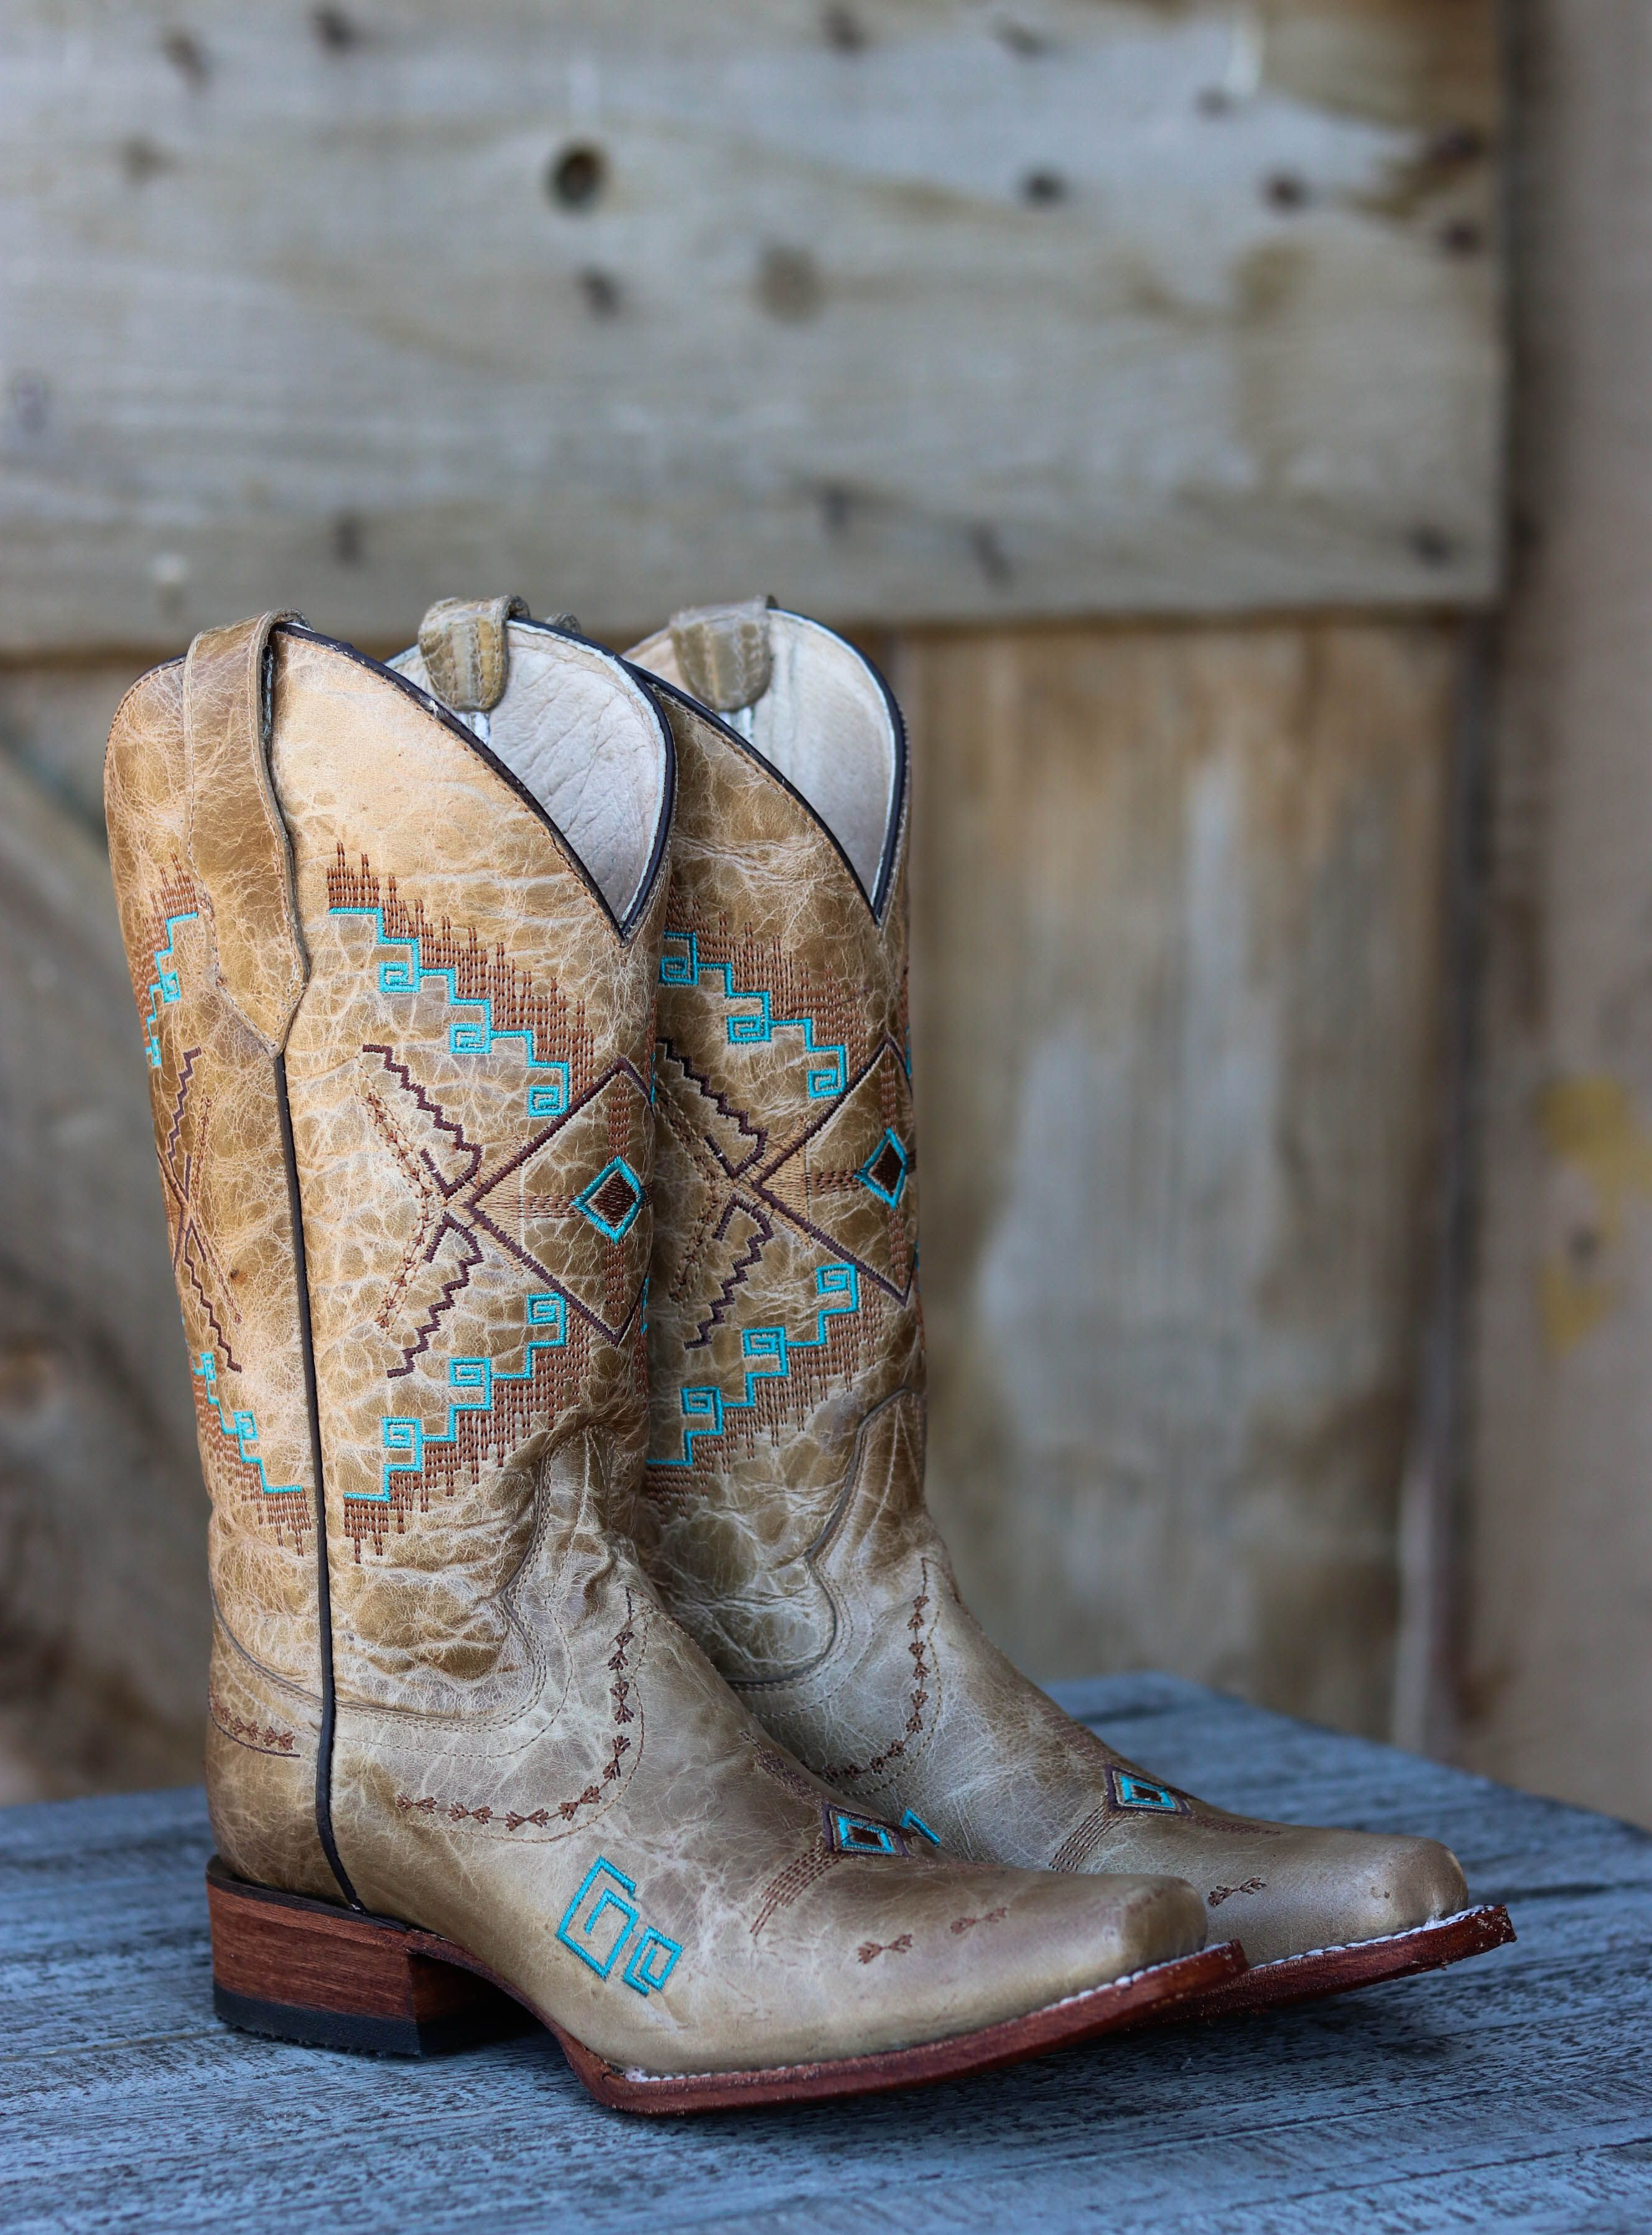 78983d6a289 One of our favorite square toe boots! The turquoise stitching stands ...